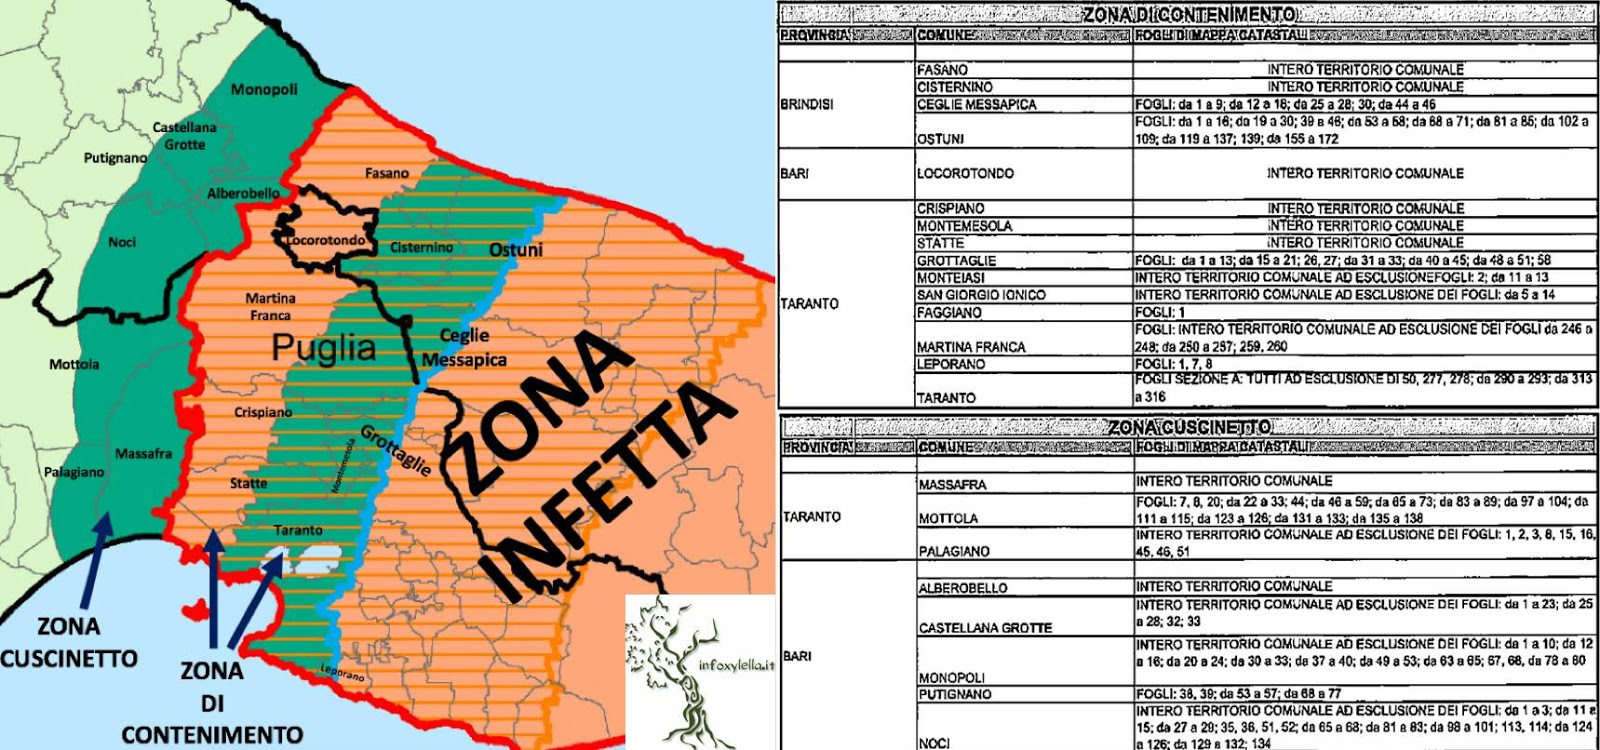 xylella infection buffer zones advance again putting plant nurseries in crisis